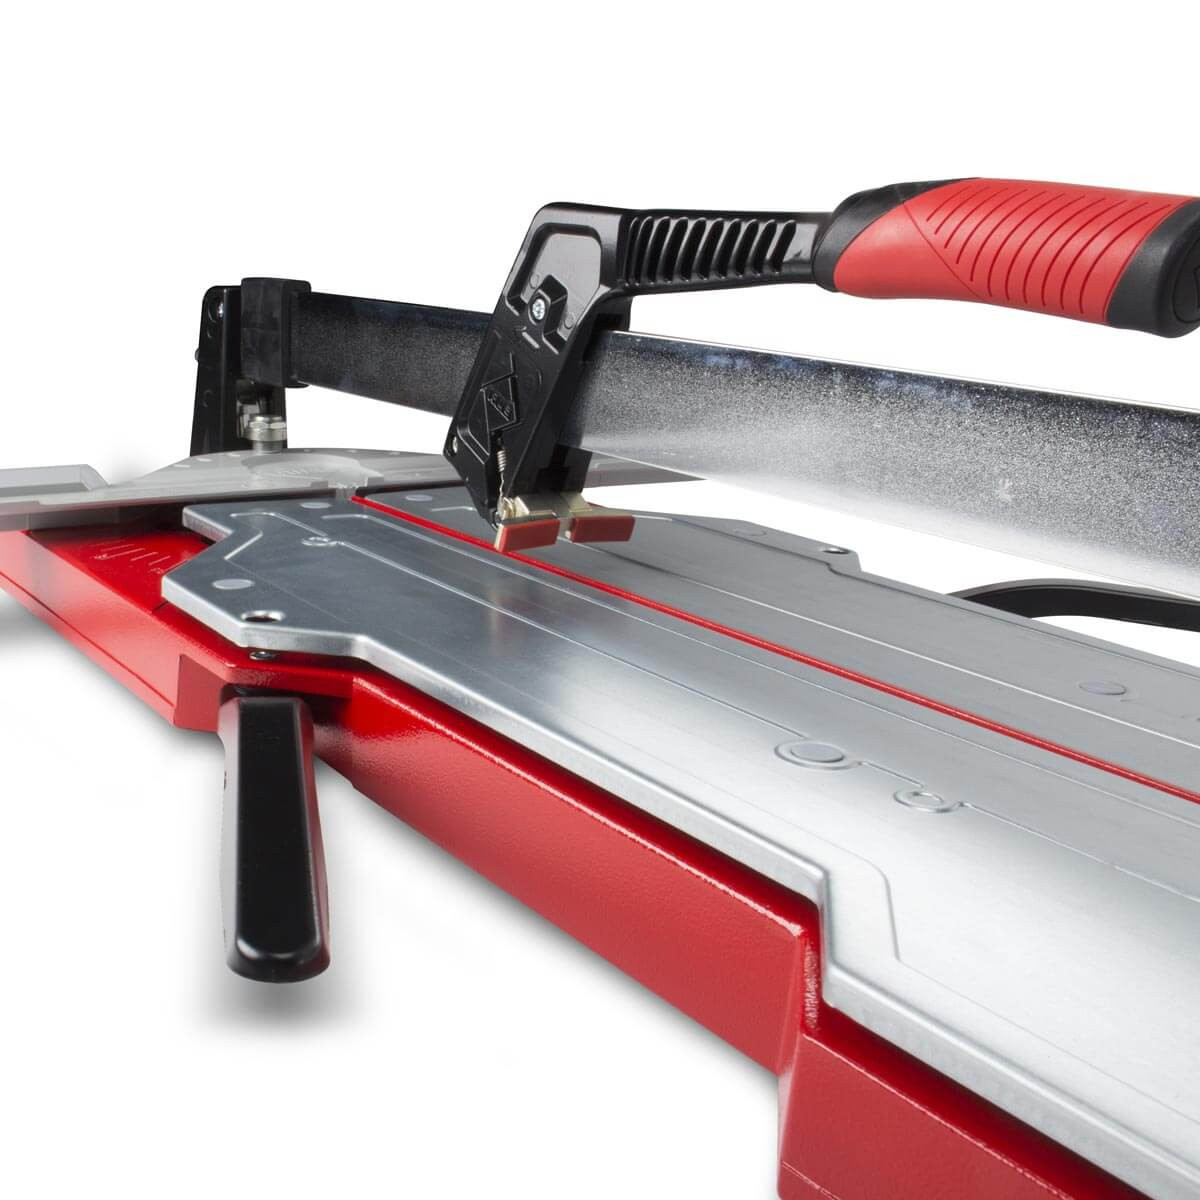 Rubi TP-S tile Cutter side view